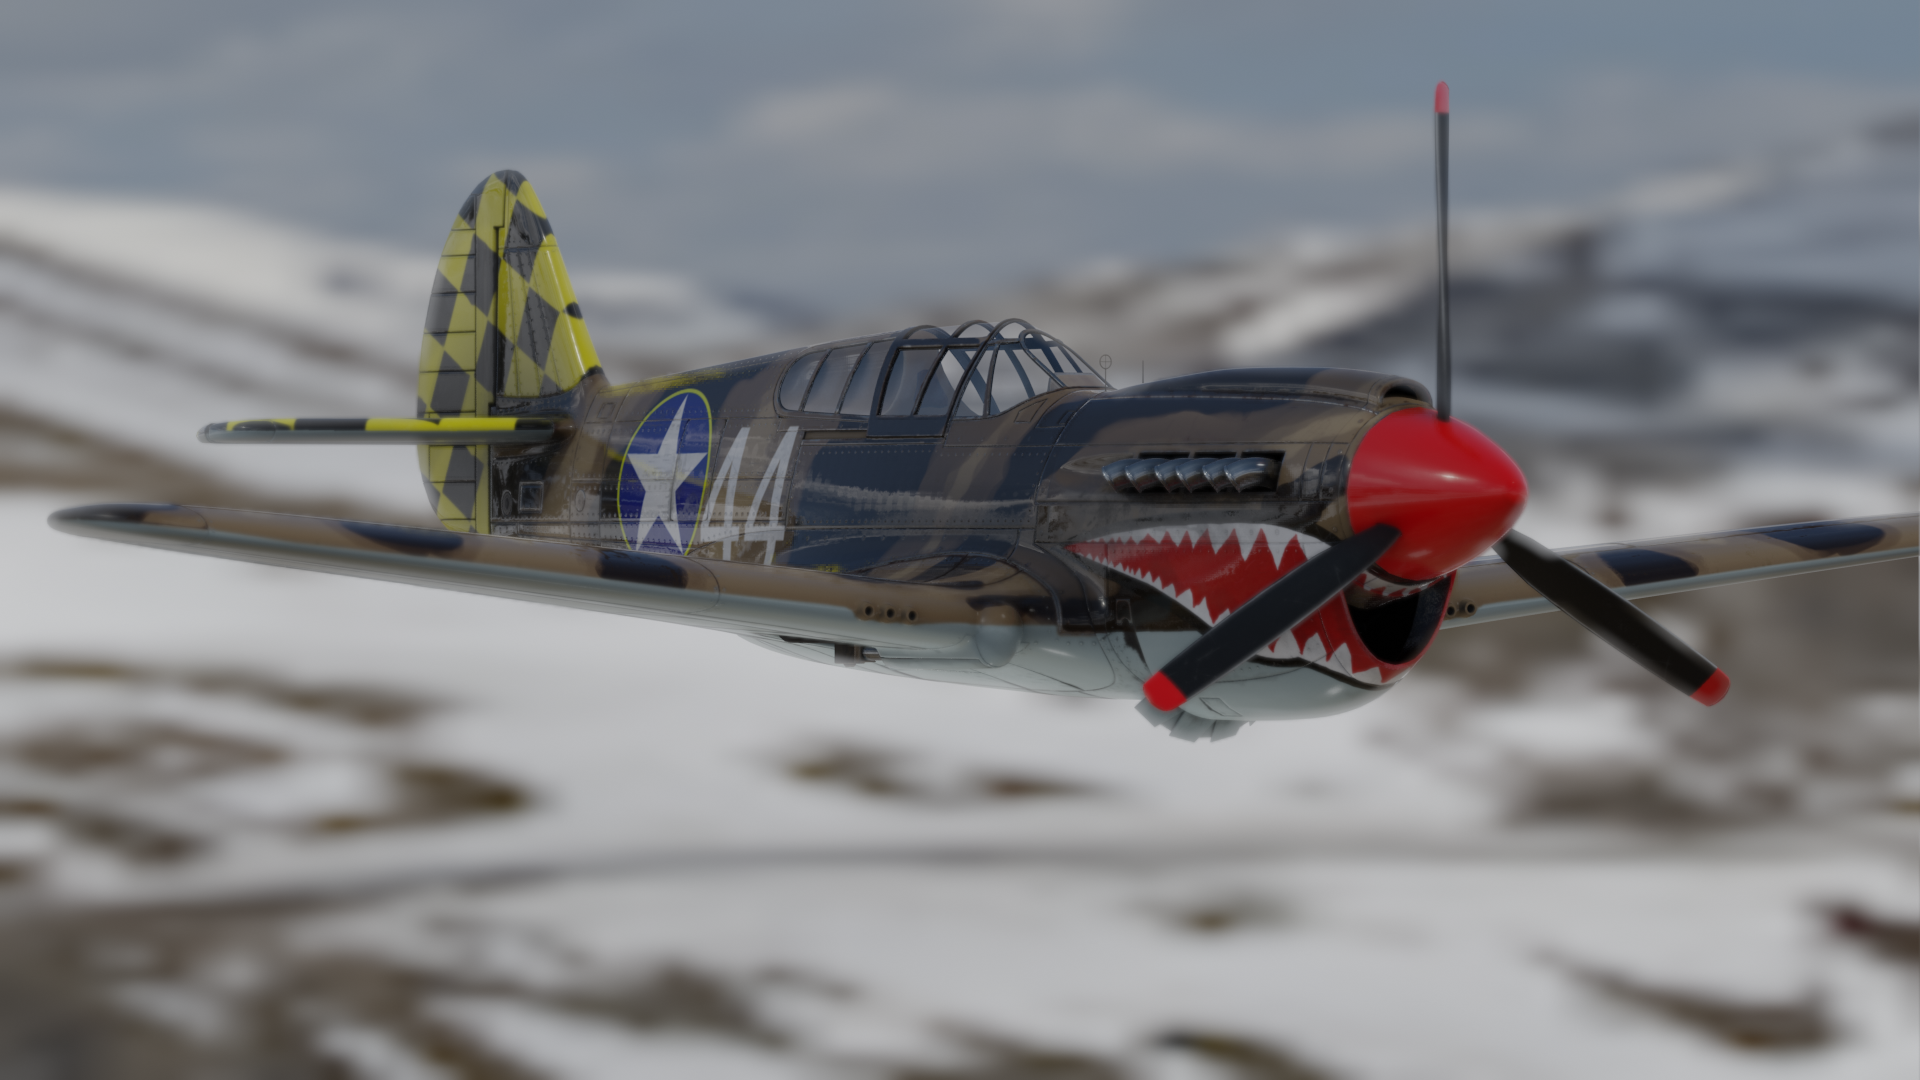 P40 Warhawk preview image 3